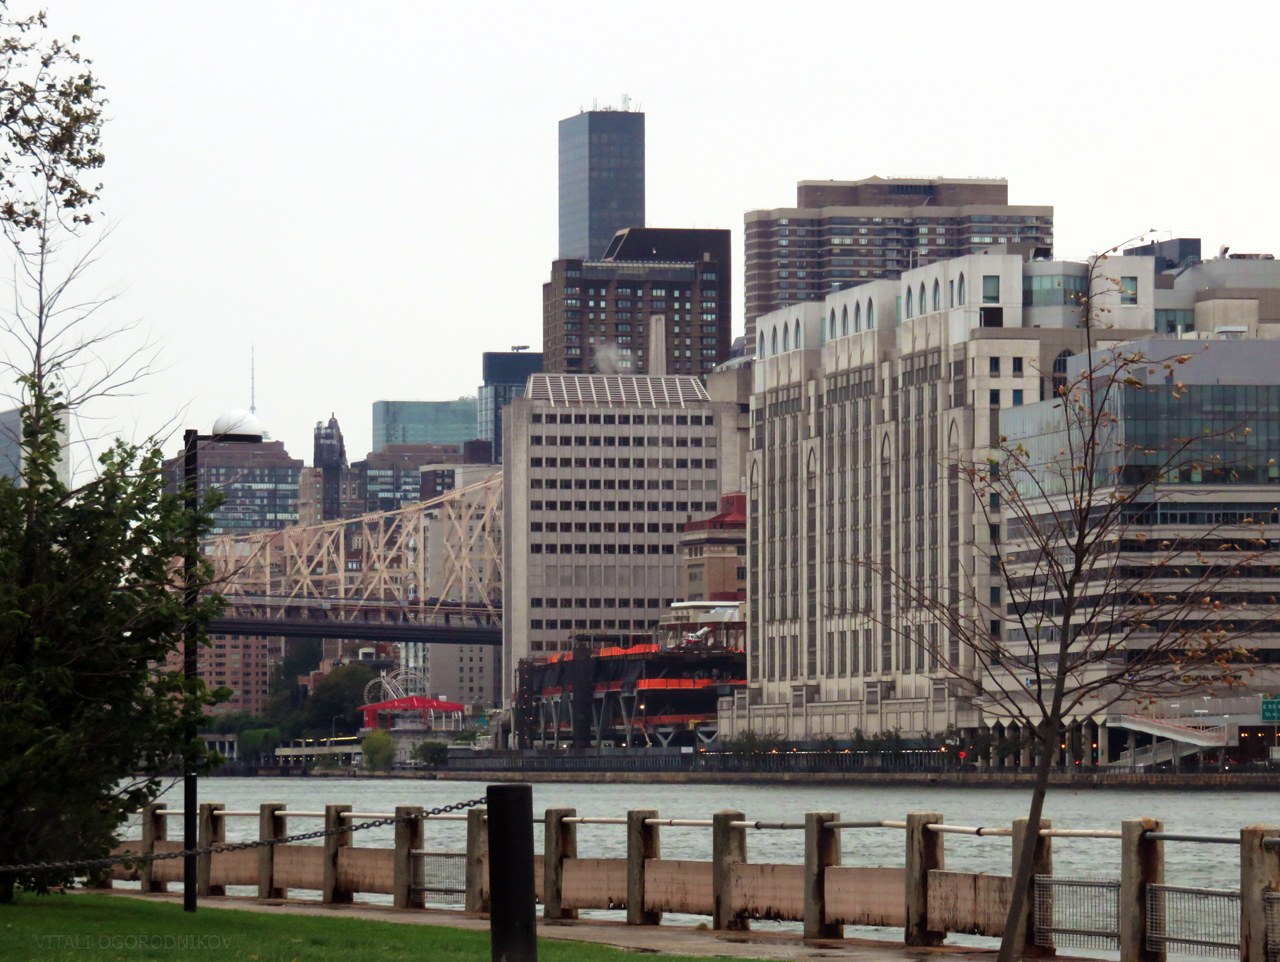 Rockefeller Research Building (center) fronts the new deck, with the Hospital for Special Surgery buildings (right). Looking southwest from Roosevelt Island.